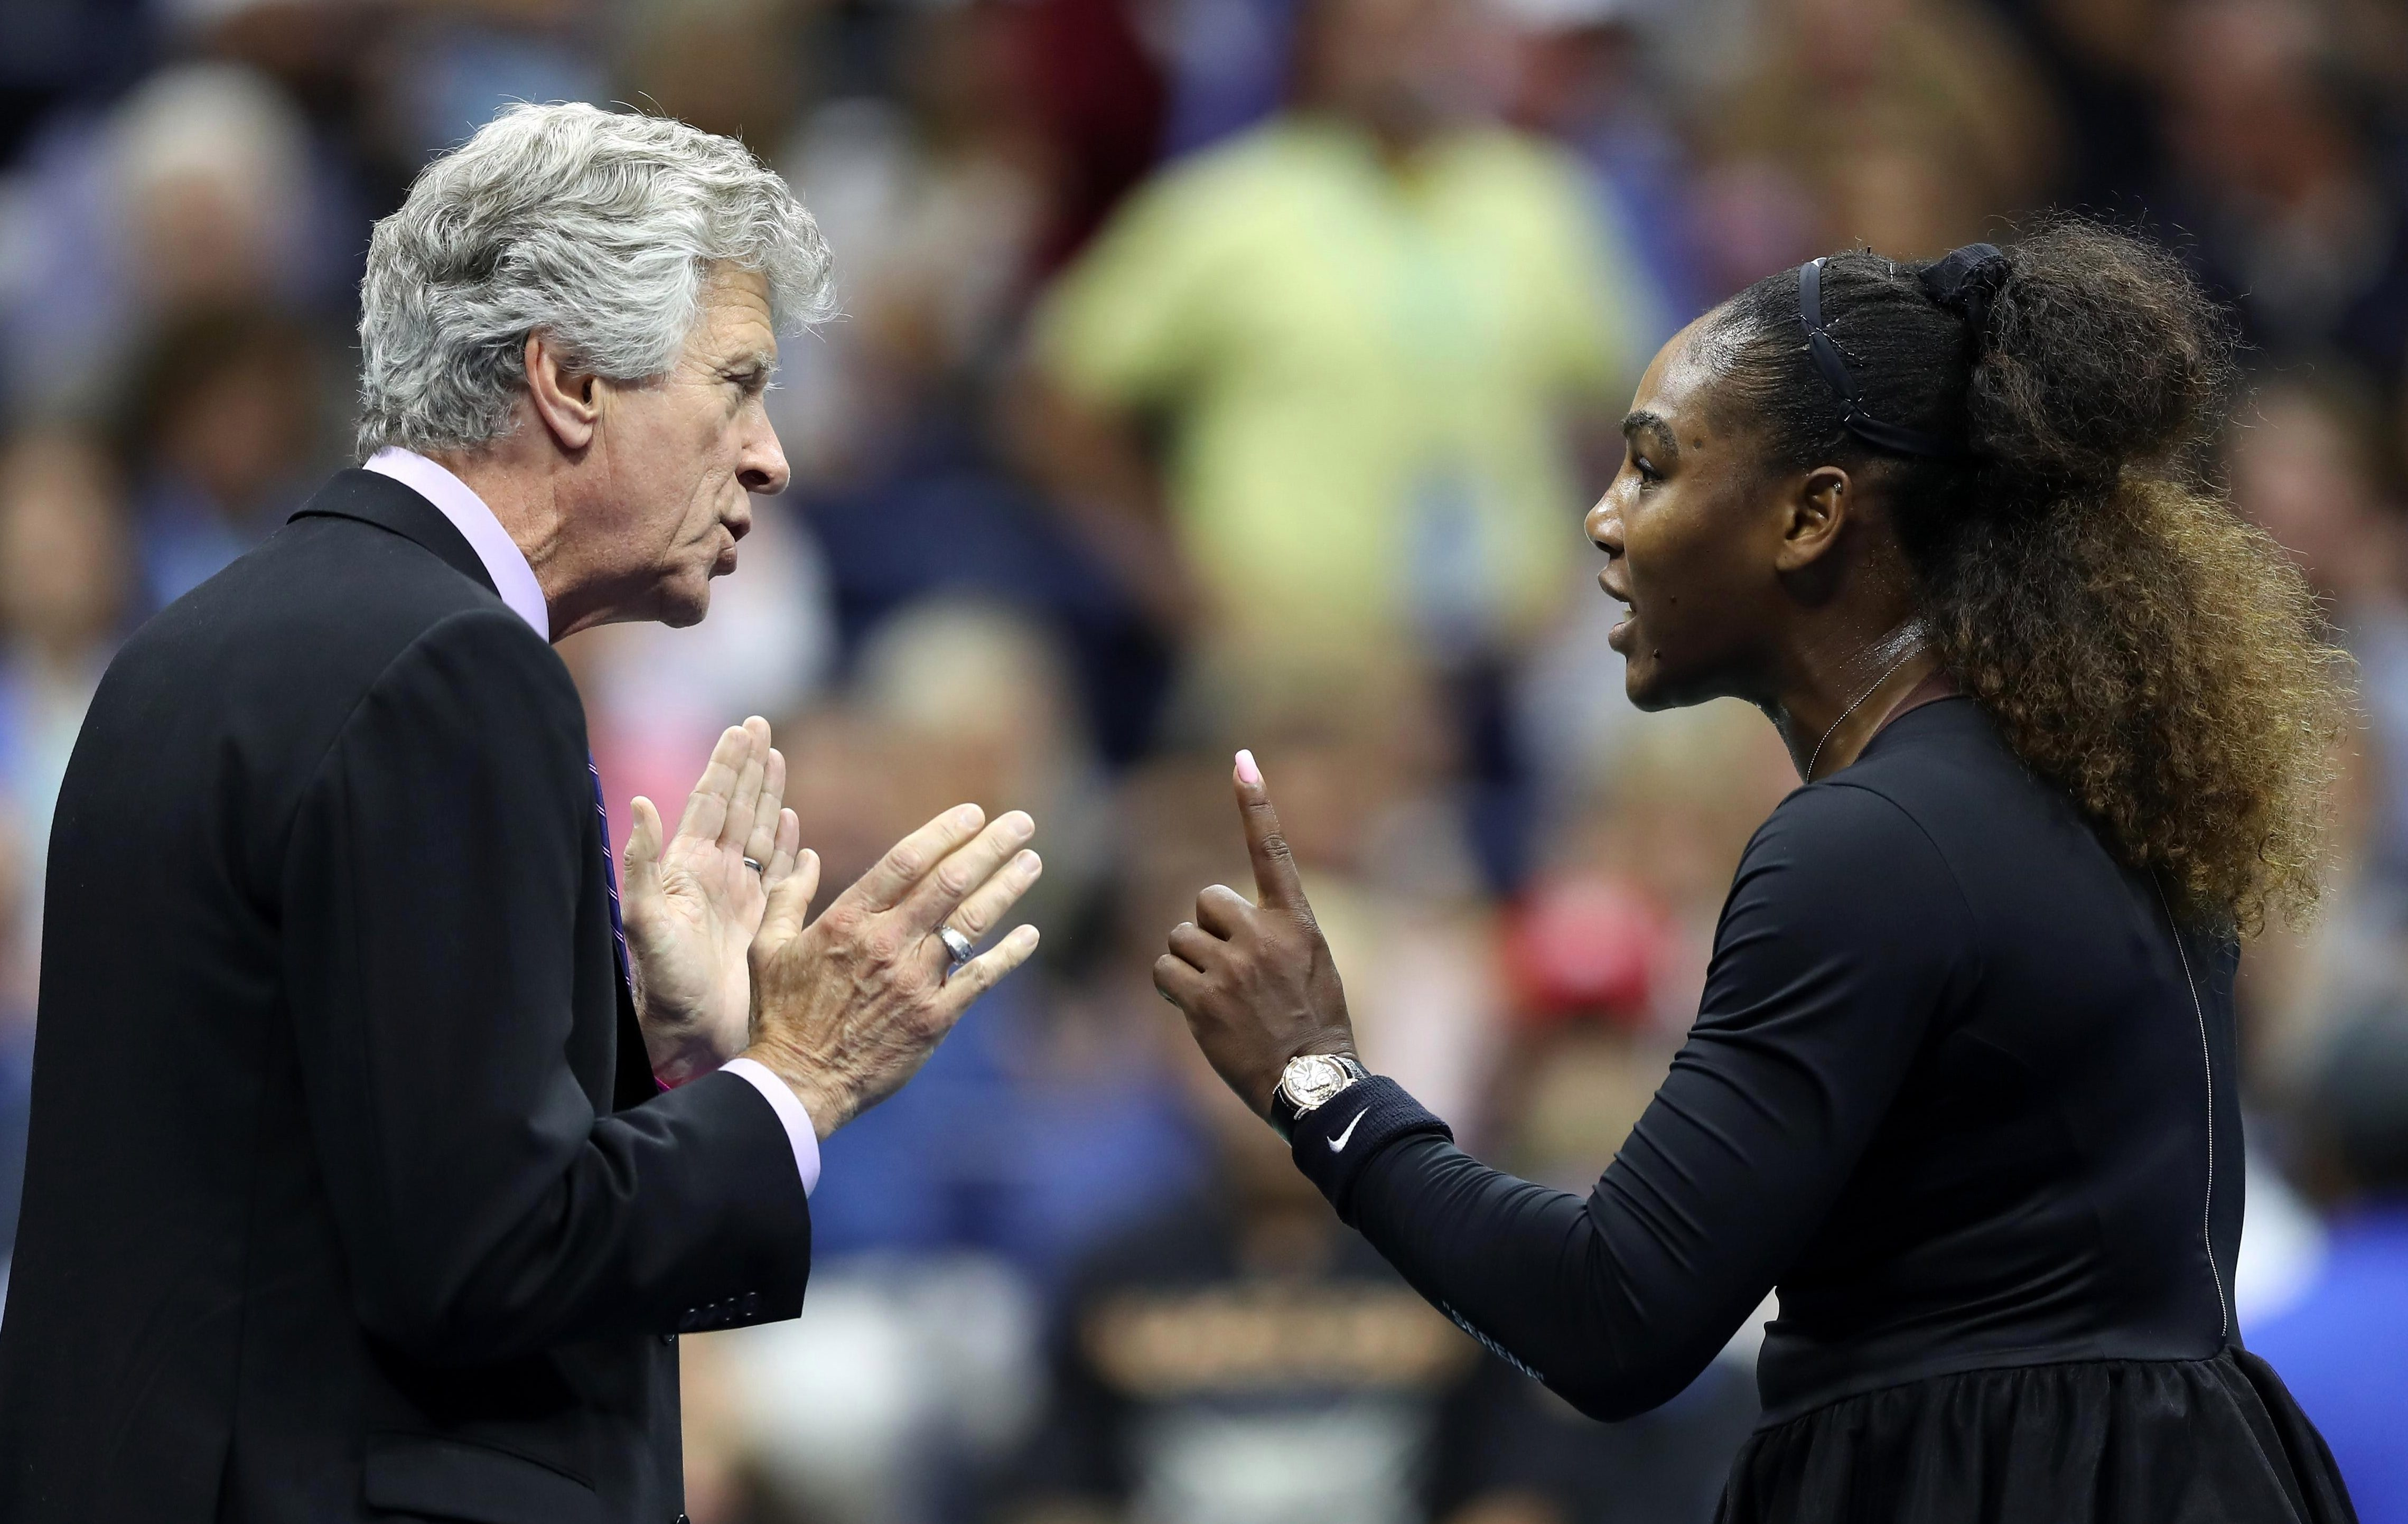 Serena Williams blasts the umpire during her US Open defeat to Naomi Osaka